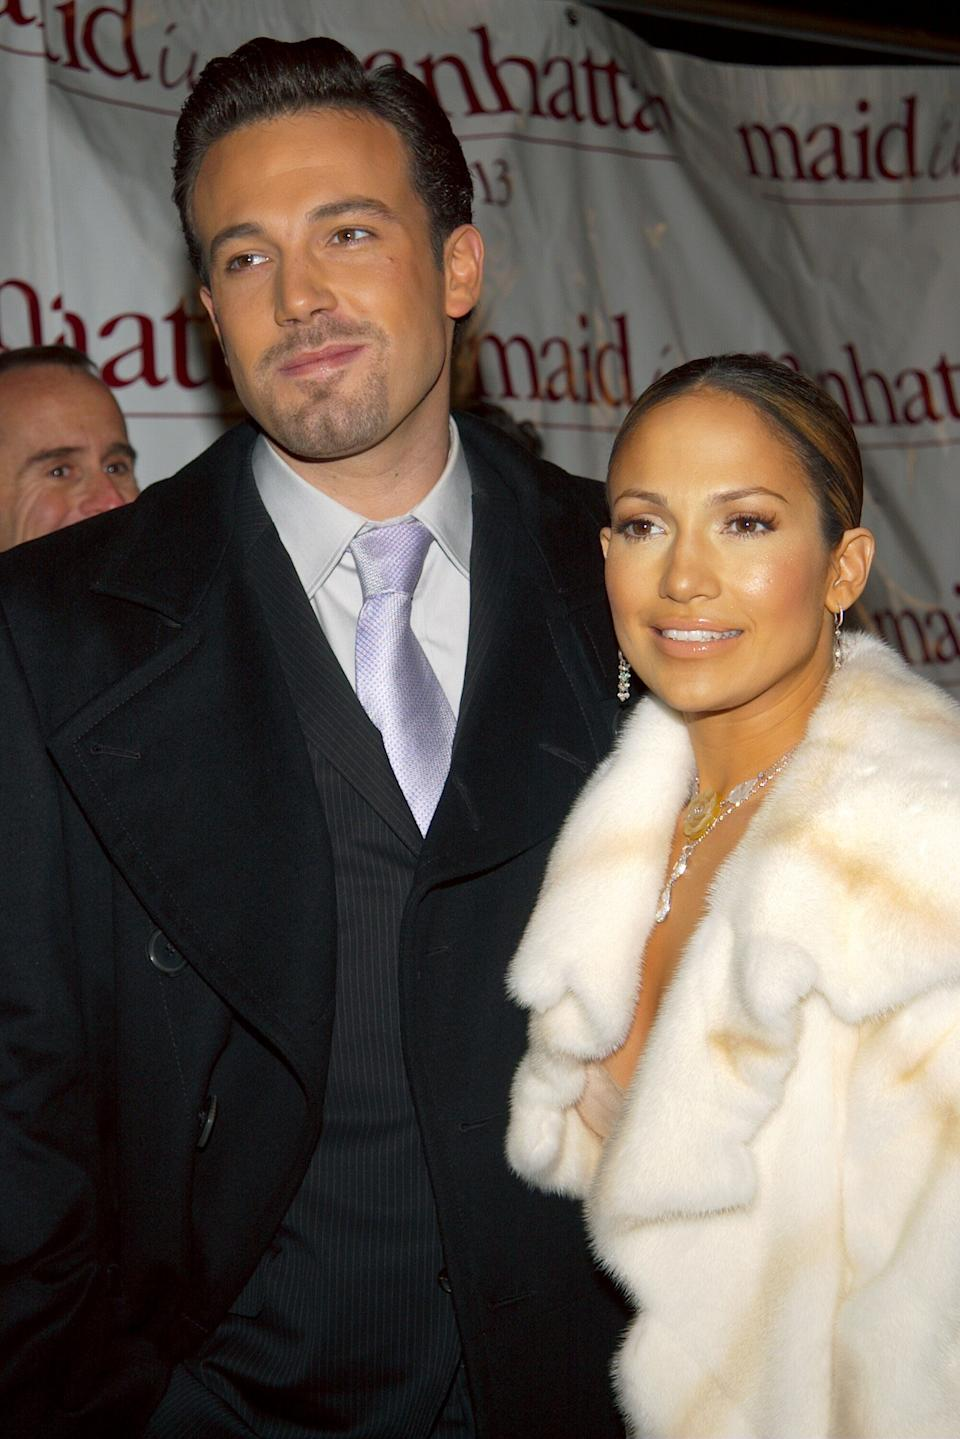 """<p>Affleck and Lopez's high-profile relationship more than made up for the bad reviews that accompanied their box office flop, """"Gigli."""" The pair became infamously known as """"Bennifer"""" after they started dating in 2002. Although they were engaged, their wedding was reportedly called off days before it was to take place in 2003. <em>(Image via Getty Images)</em></p>"""